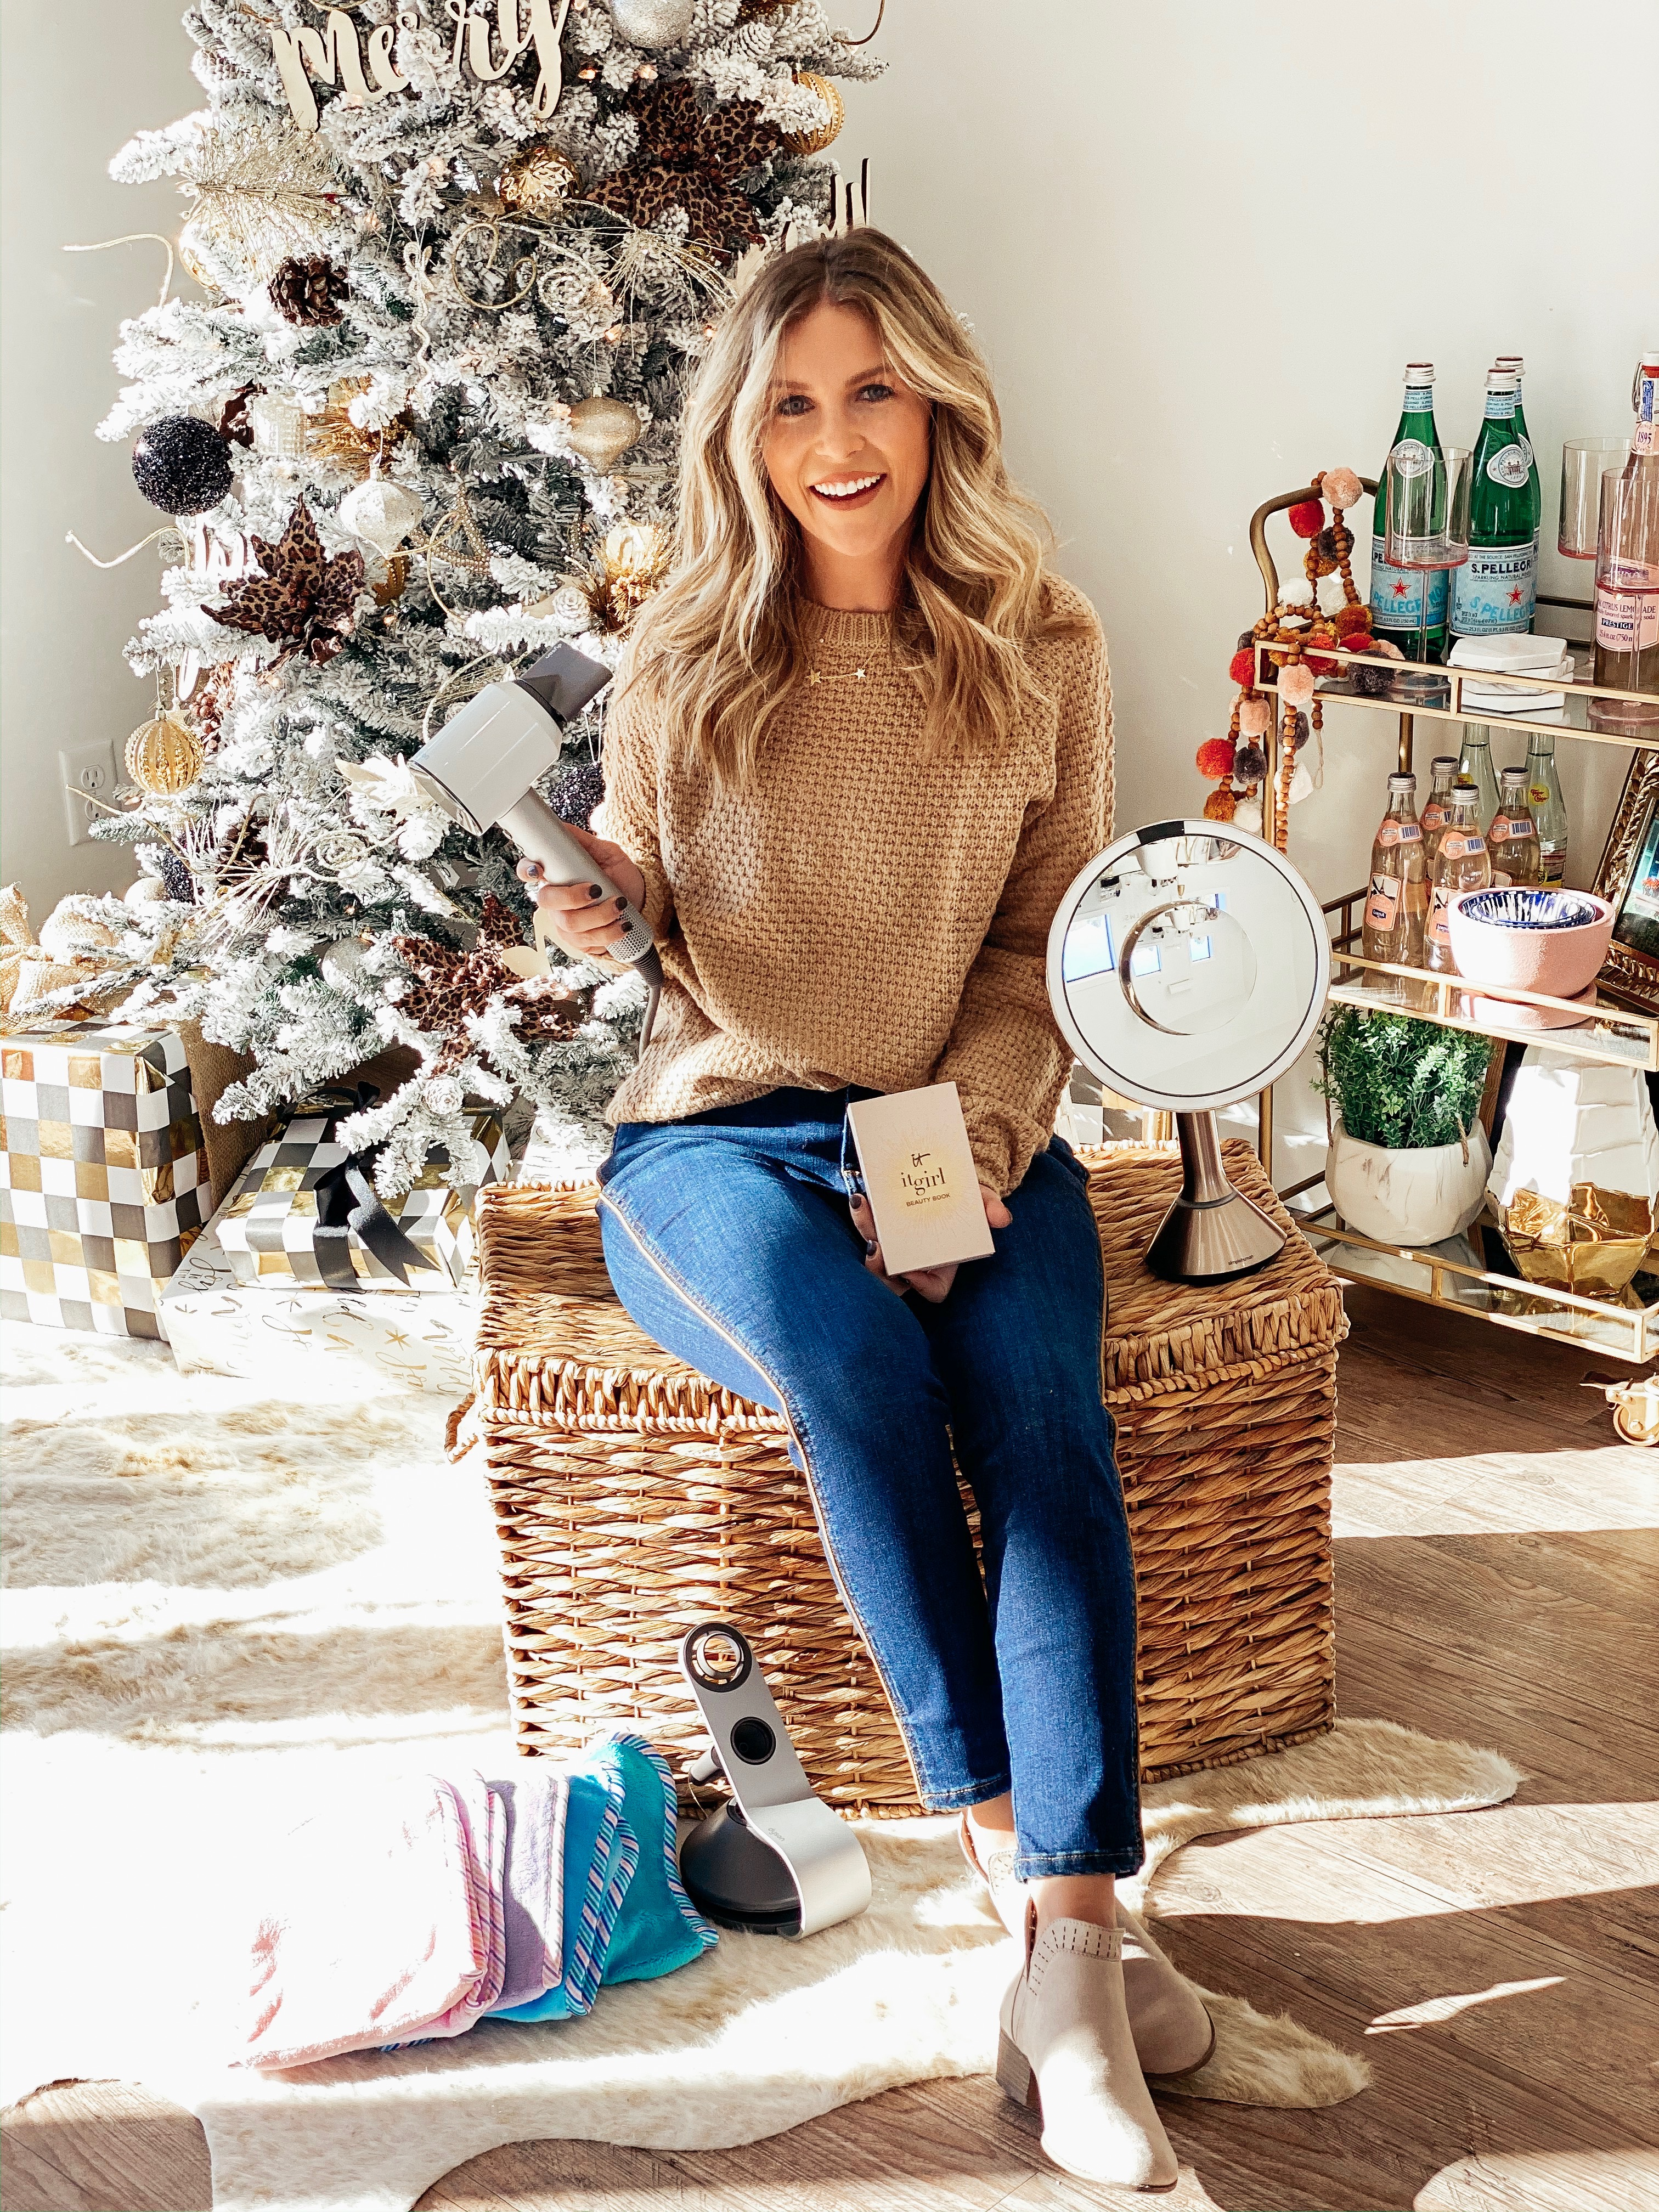 Life and style blogger Ashlee Nichols shares her favorite holiday gifts from QVC. A roundup of the best of QVC items for everyone on your list.